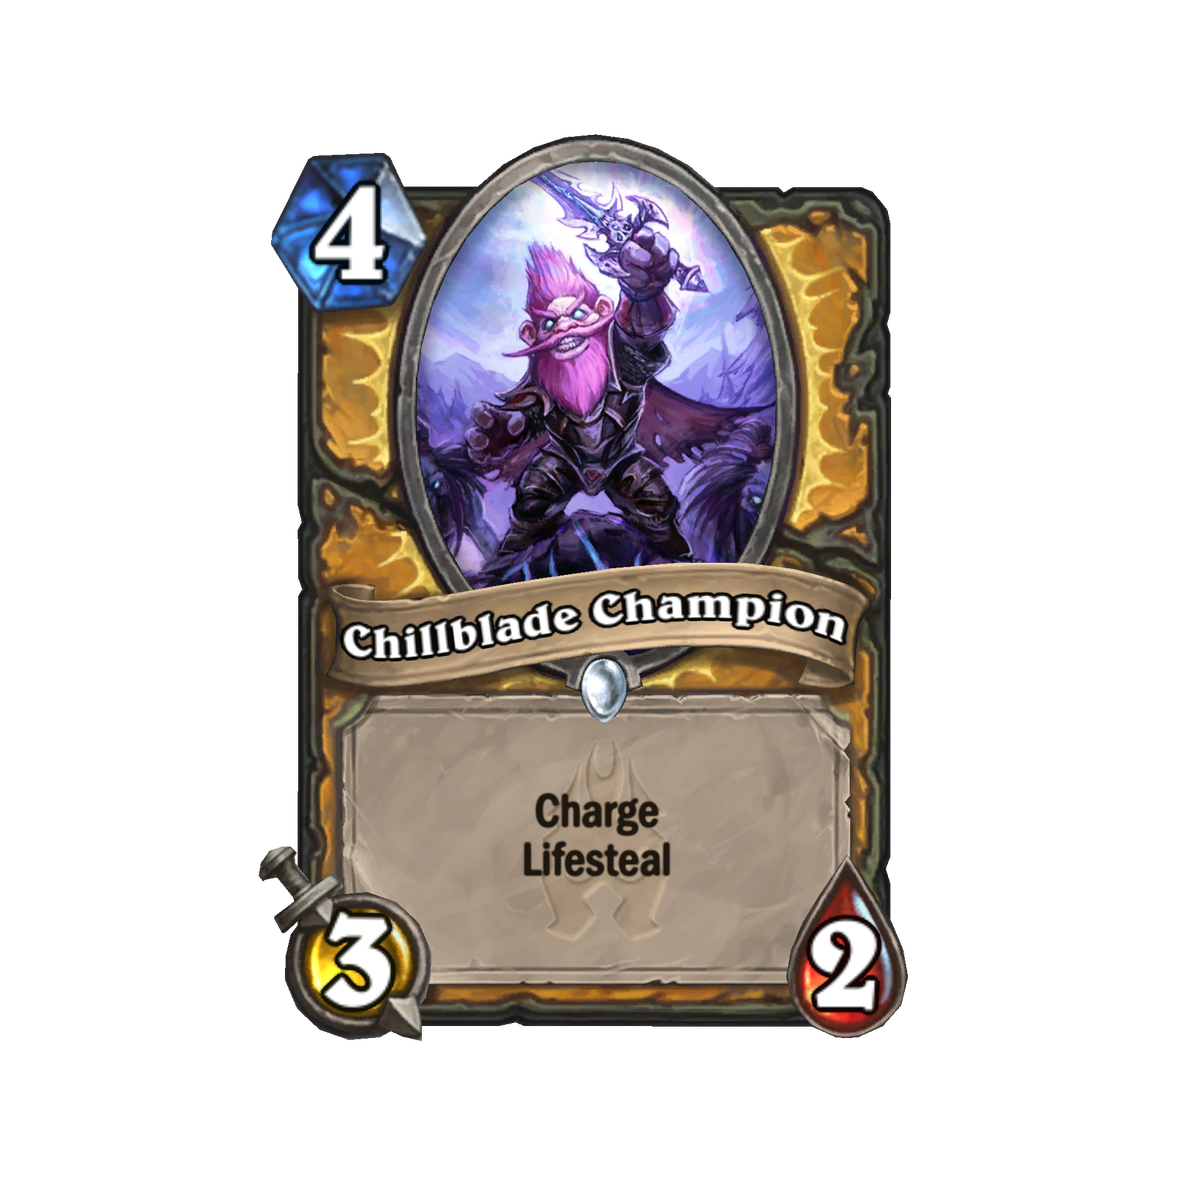 This Hearthstone card is named Chillblade Champion. It is a four-cost card with three damage and two health, and it has the keywords charge and lifesteal. Its card art depicts a heavily armored gnome with pink hair holding up a sword as if charging forwar